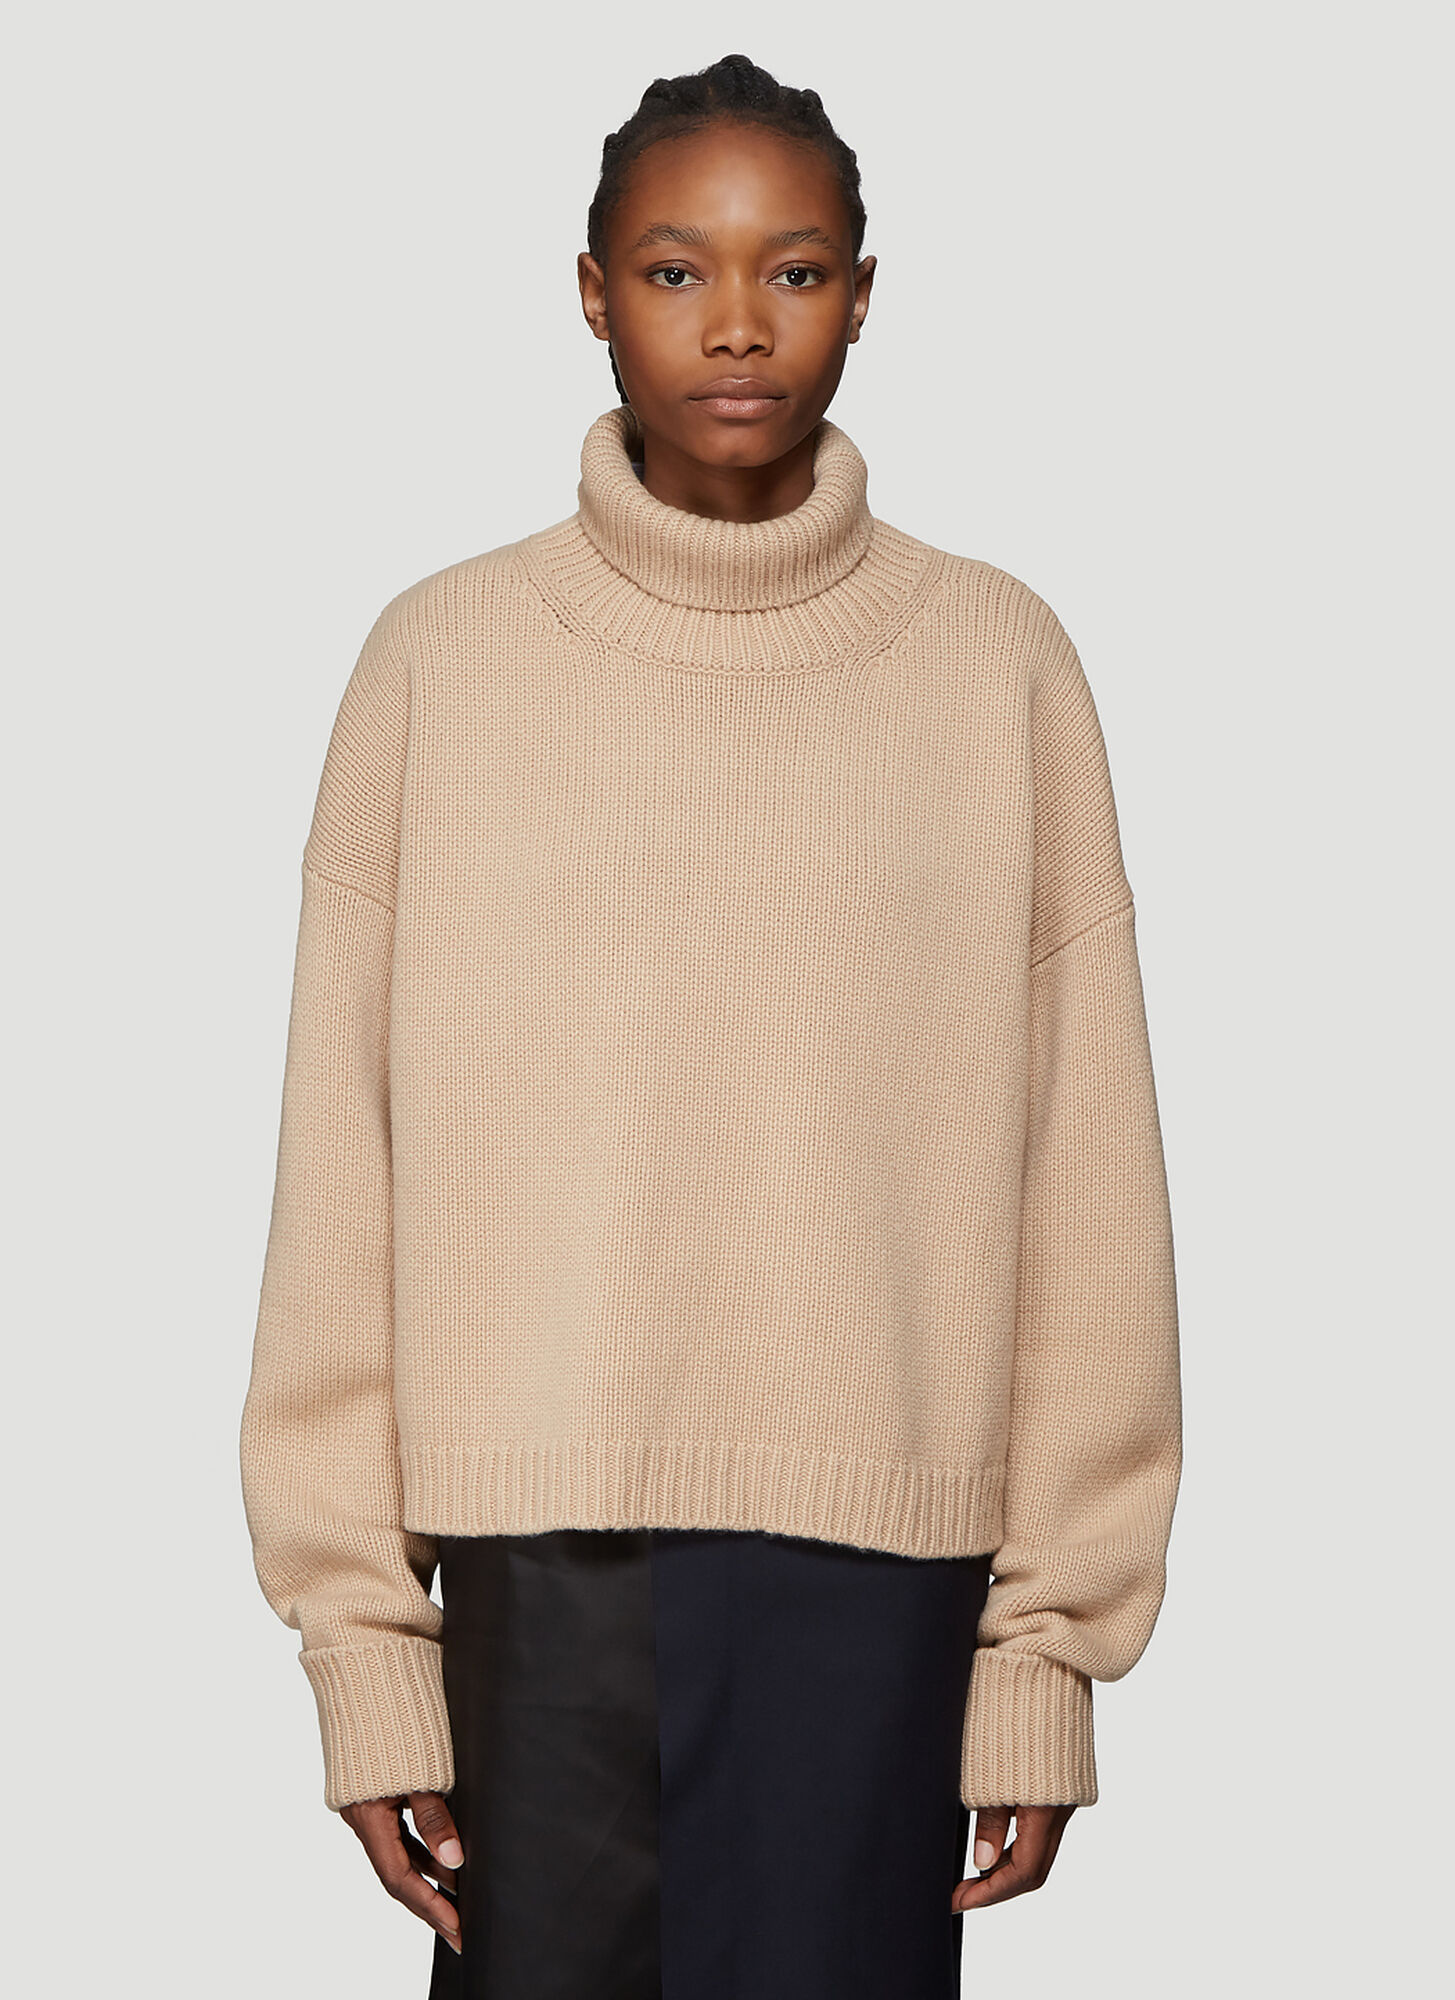 Maison Margiela Chunky Knit Sweater in Brown